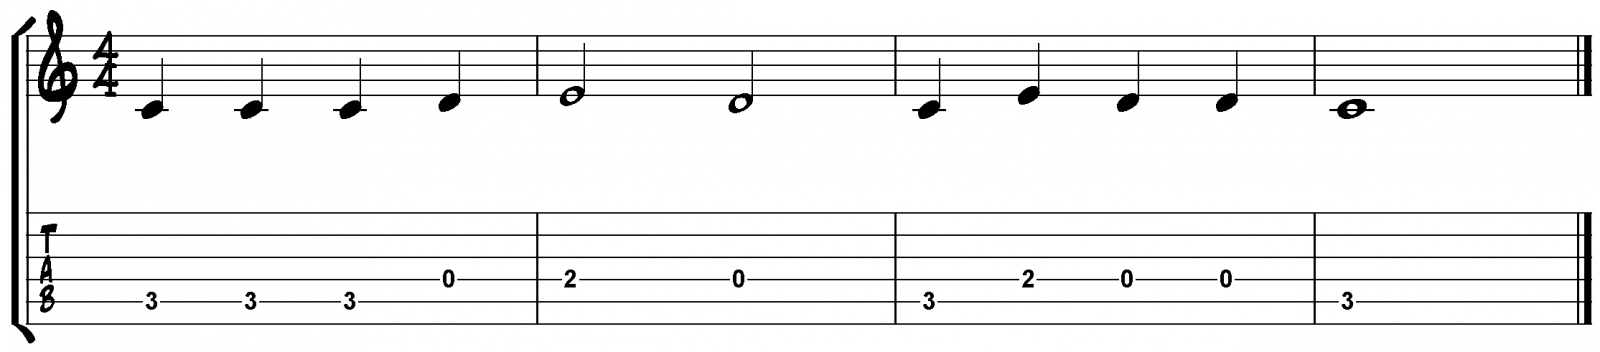 tablature guitare